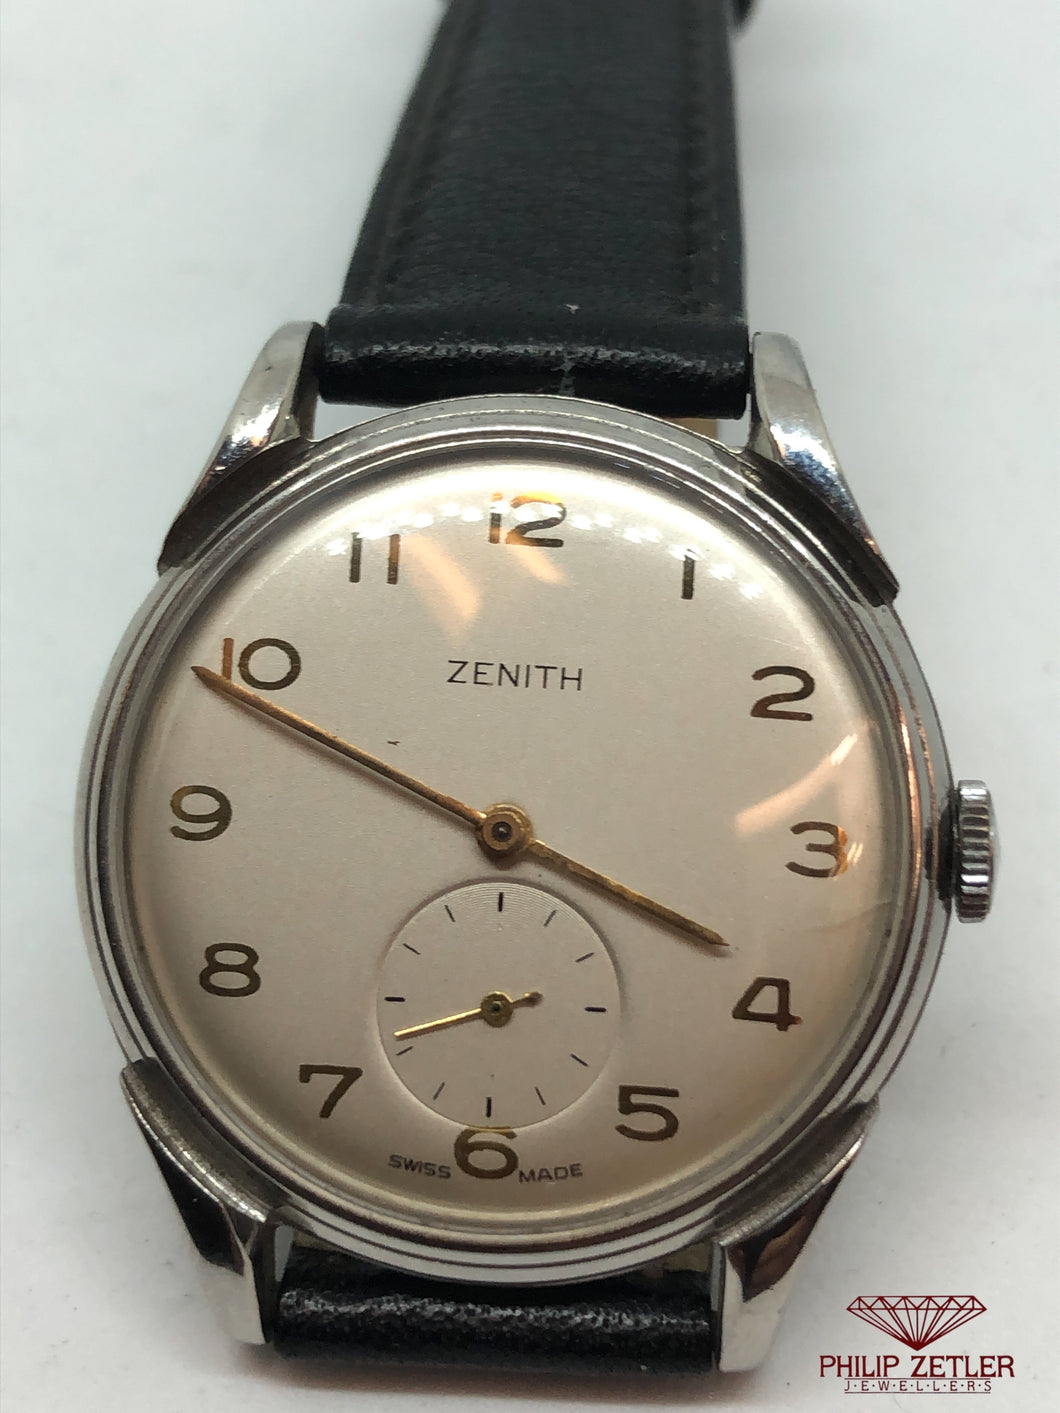 Zenith Vintage Watch 1950s